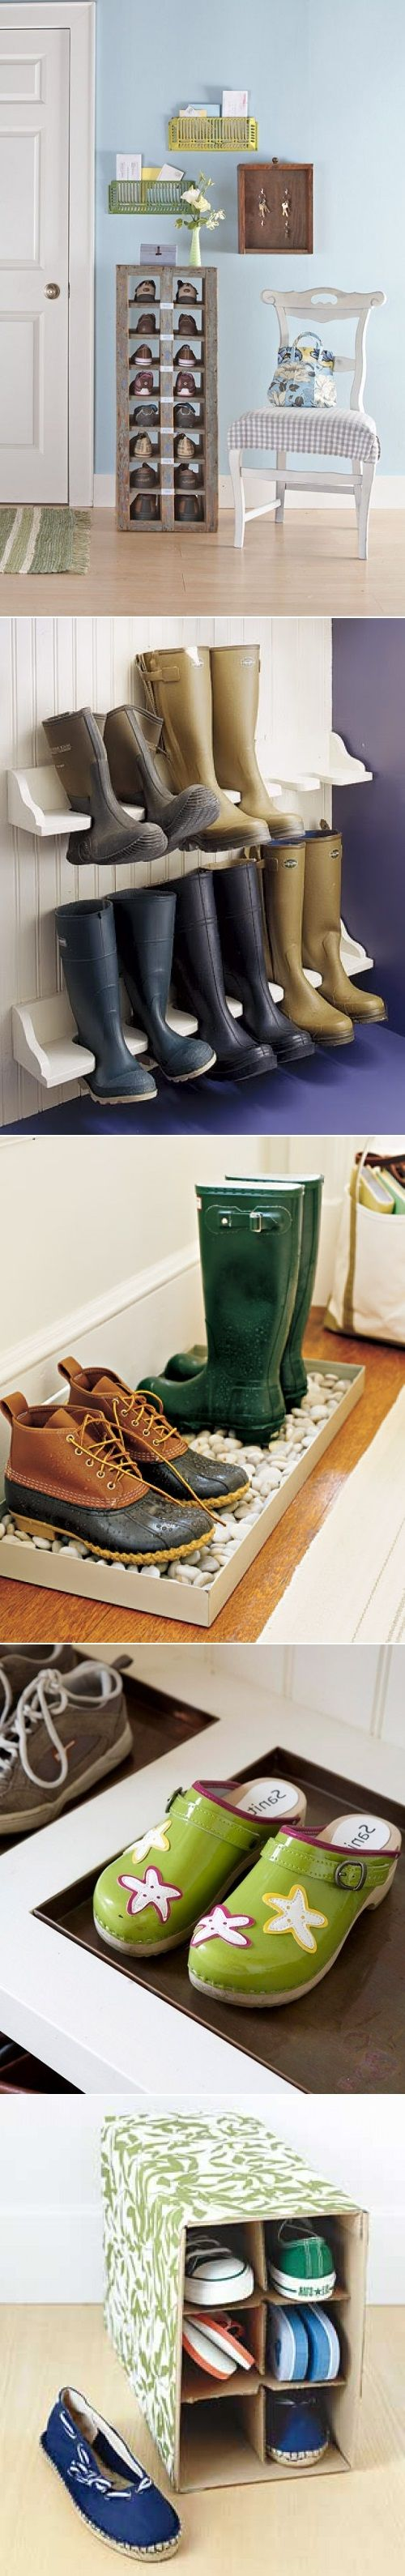 5 creative diy shoe storage solutions do it yourself - Diy storage ideas for shoes ...